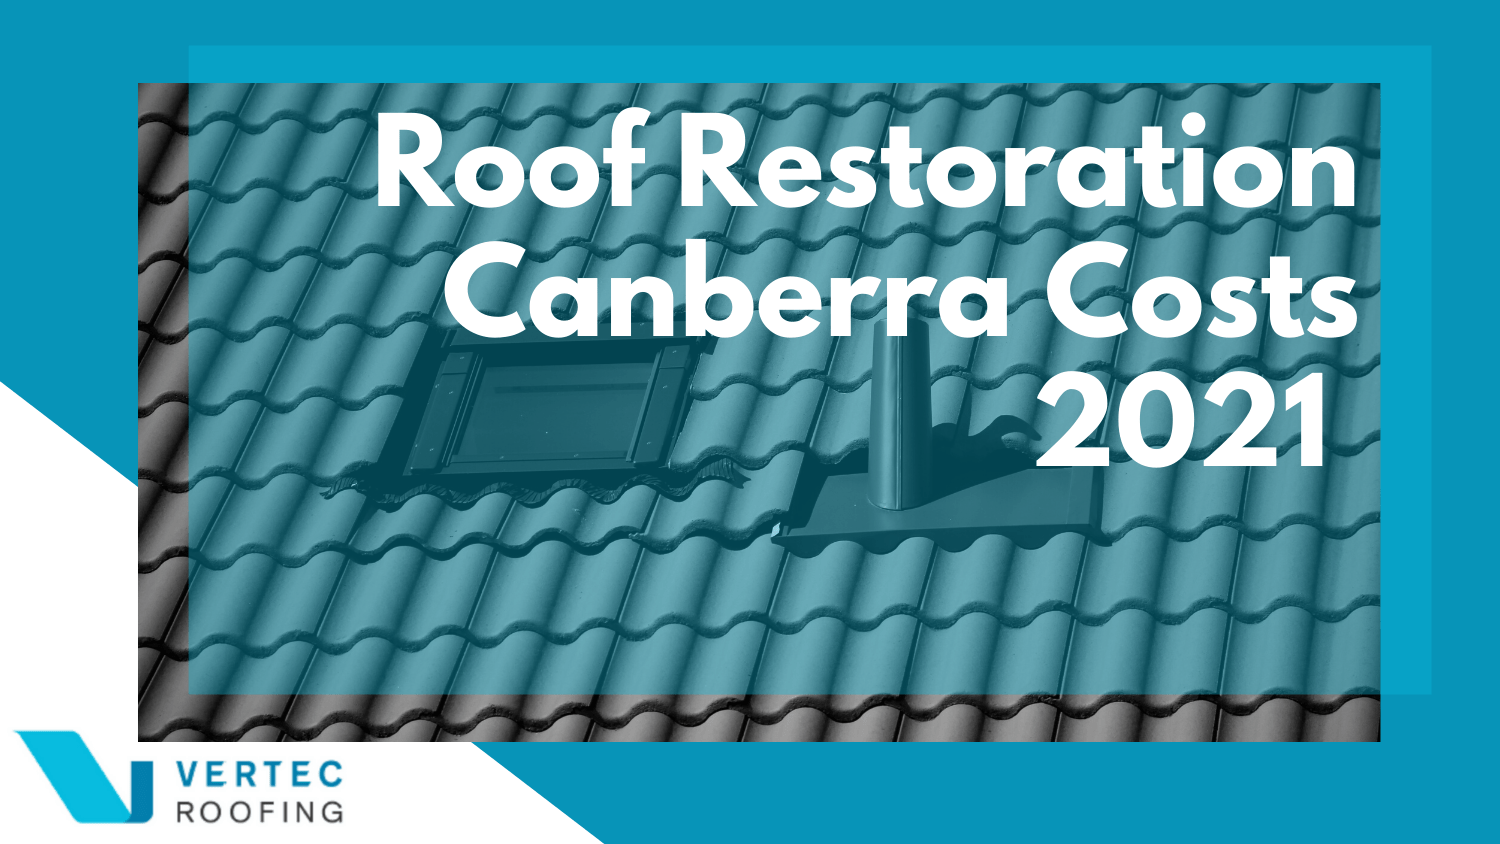 Roof Restoration Canberra Costs 2021